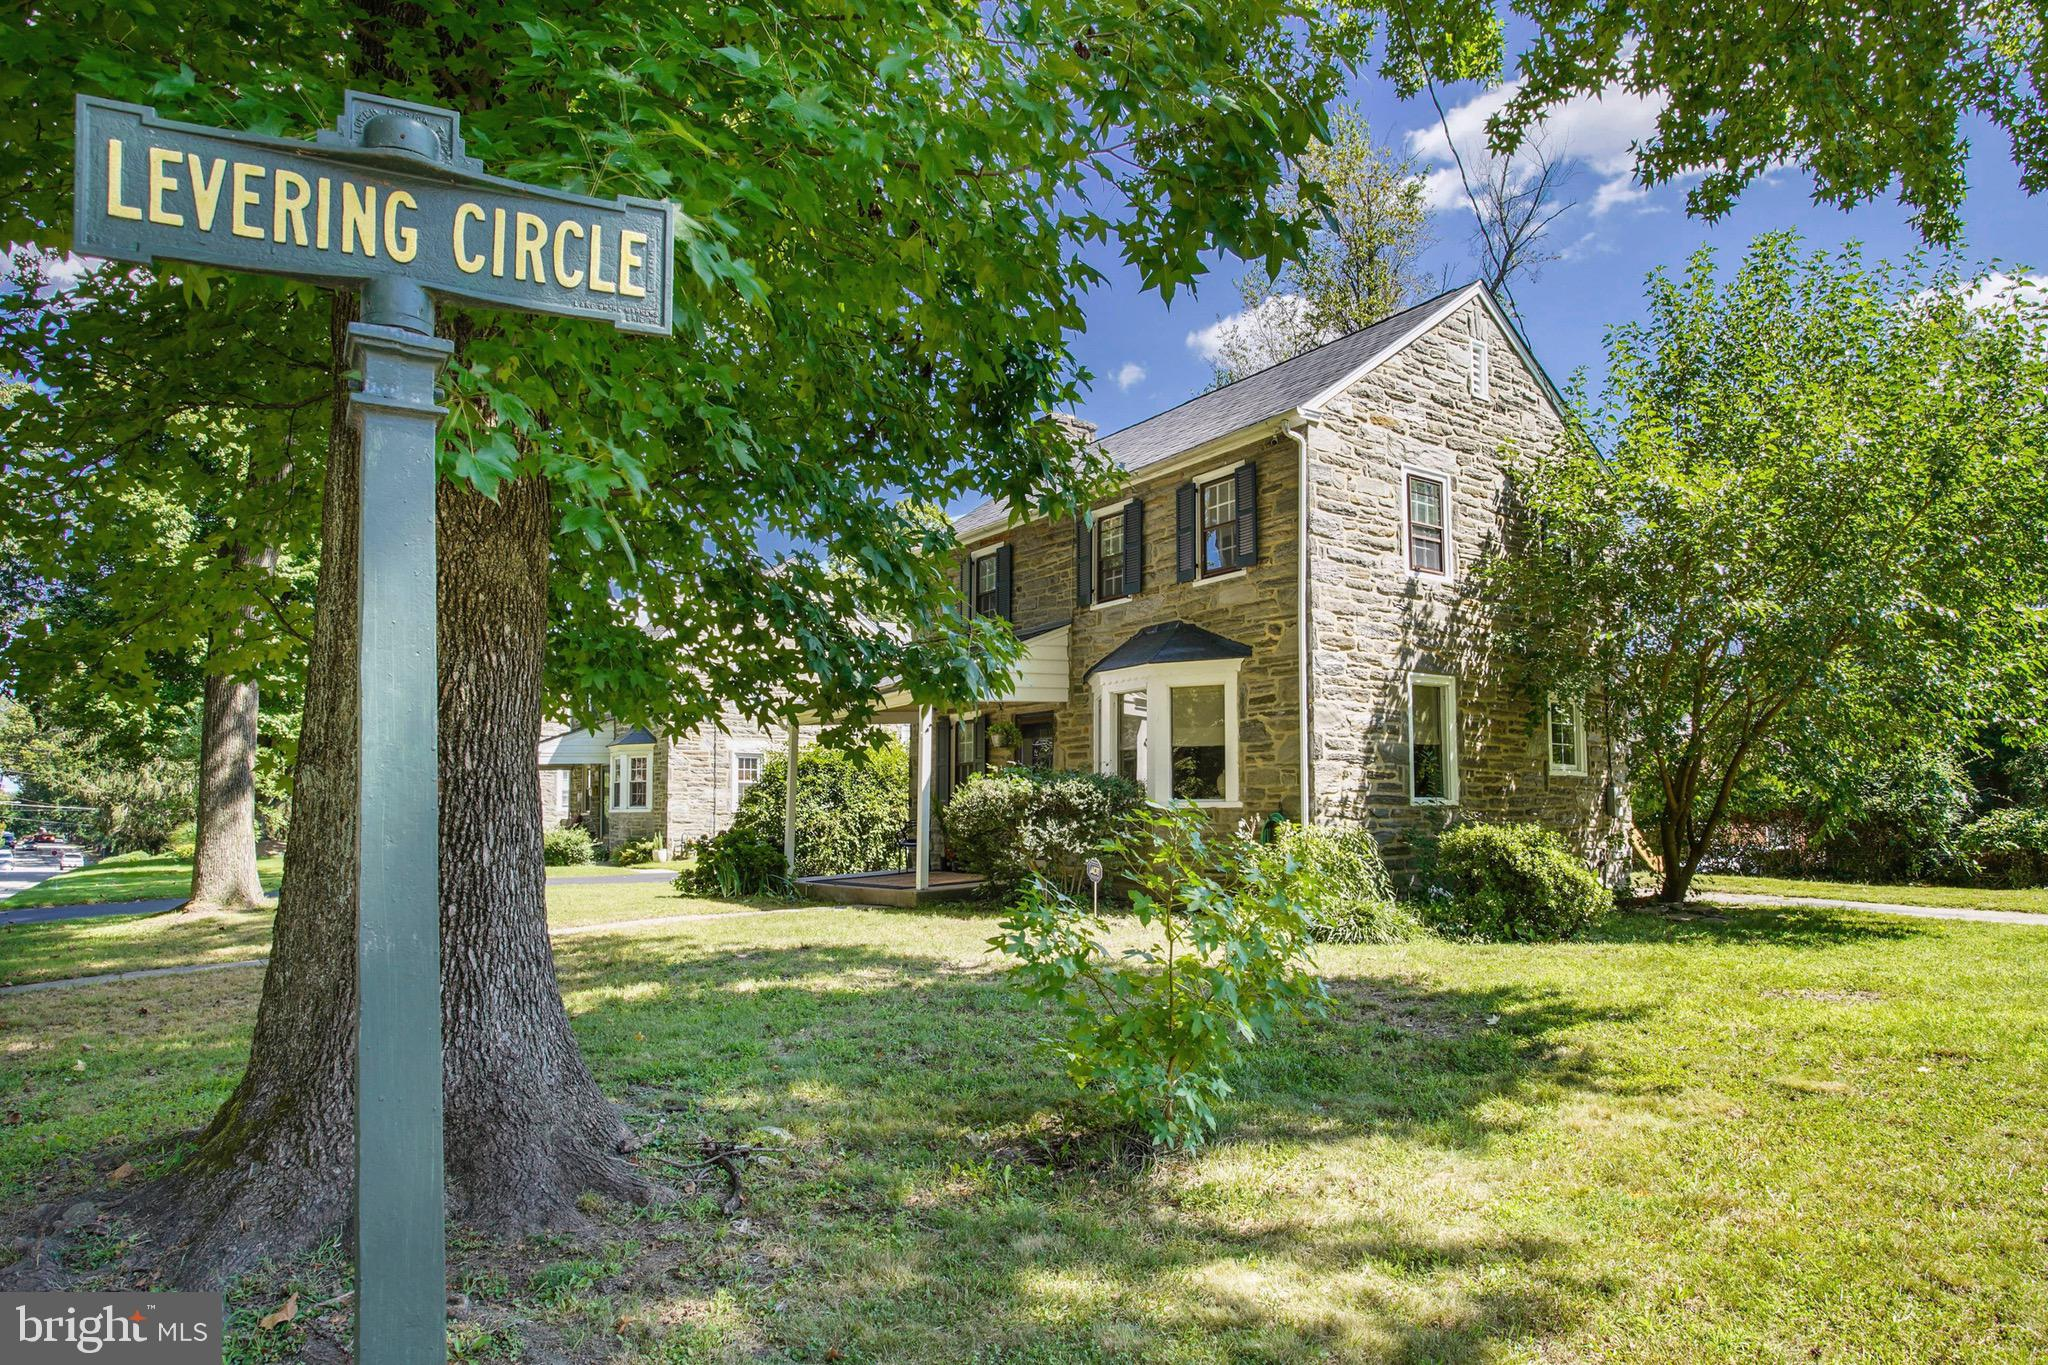 Don't miss this 1950's Stone Colonial set on a beautifully landscaped flat lot on Levering Circle, one of Bala Cynwyd's most desired cul de sac streets with a private driveway.  This charming sun filled home is just steps to Bala Cynwyd Park, Cynwyd Heritage Trail, and short walk to Bala Cynwyd Train Station and Cynwyd walking trails. Close to Wholefoods, Suburban Square & 15 minute drive to center city. Prestigious Blue Ribbon Award Winning Lower Merion Schools! This corner single features 3 bedrooms 2 full baths, a spacious living room with brick wood burning  fireplace, a separate large dining room and eat in kitchen with built in breakfast table. Kitchen boasts granite countertops, flat panel cabinetry, stainless steel appliances including a commercial 5 burner gas range w/ vented hood.  The main level includes a bonus family room/office with exposed brick and built ins.  Upper level offers a large master bedroom with en suite full bath and two additional large bedrooms with a renovated hall bath. Fantastic features include original hardwood floors, LED recessed lighting, designer light fixtures & fresh paint throughout, a brand new roof,  central air, a new sewer line to street, a flat yard with storage shed and a full basement with laundry. A must see!